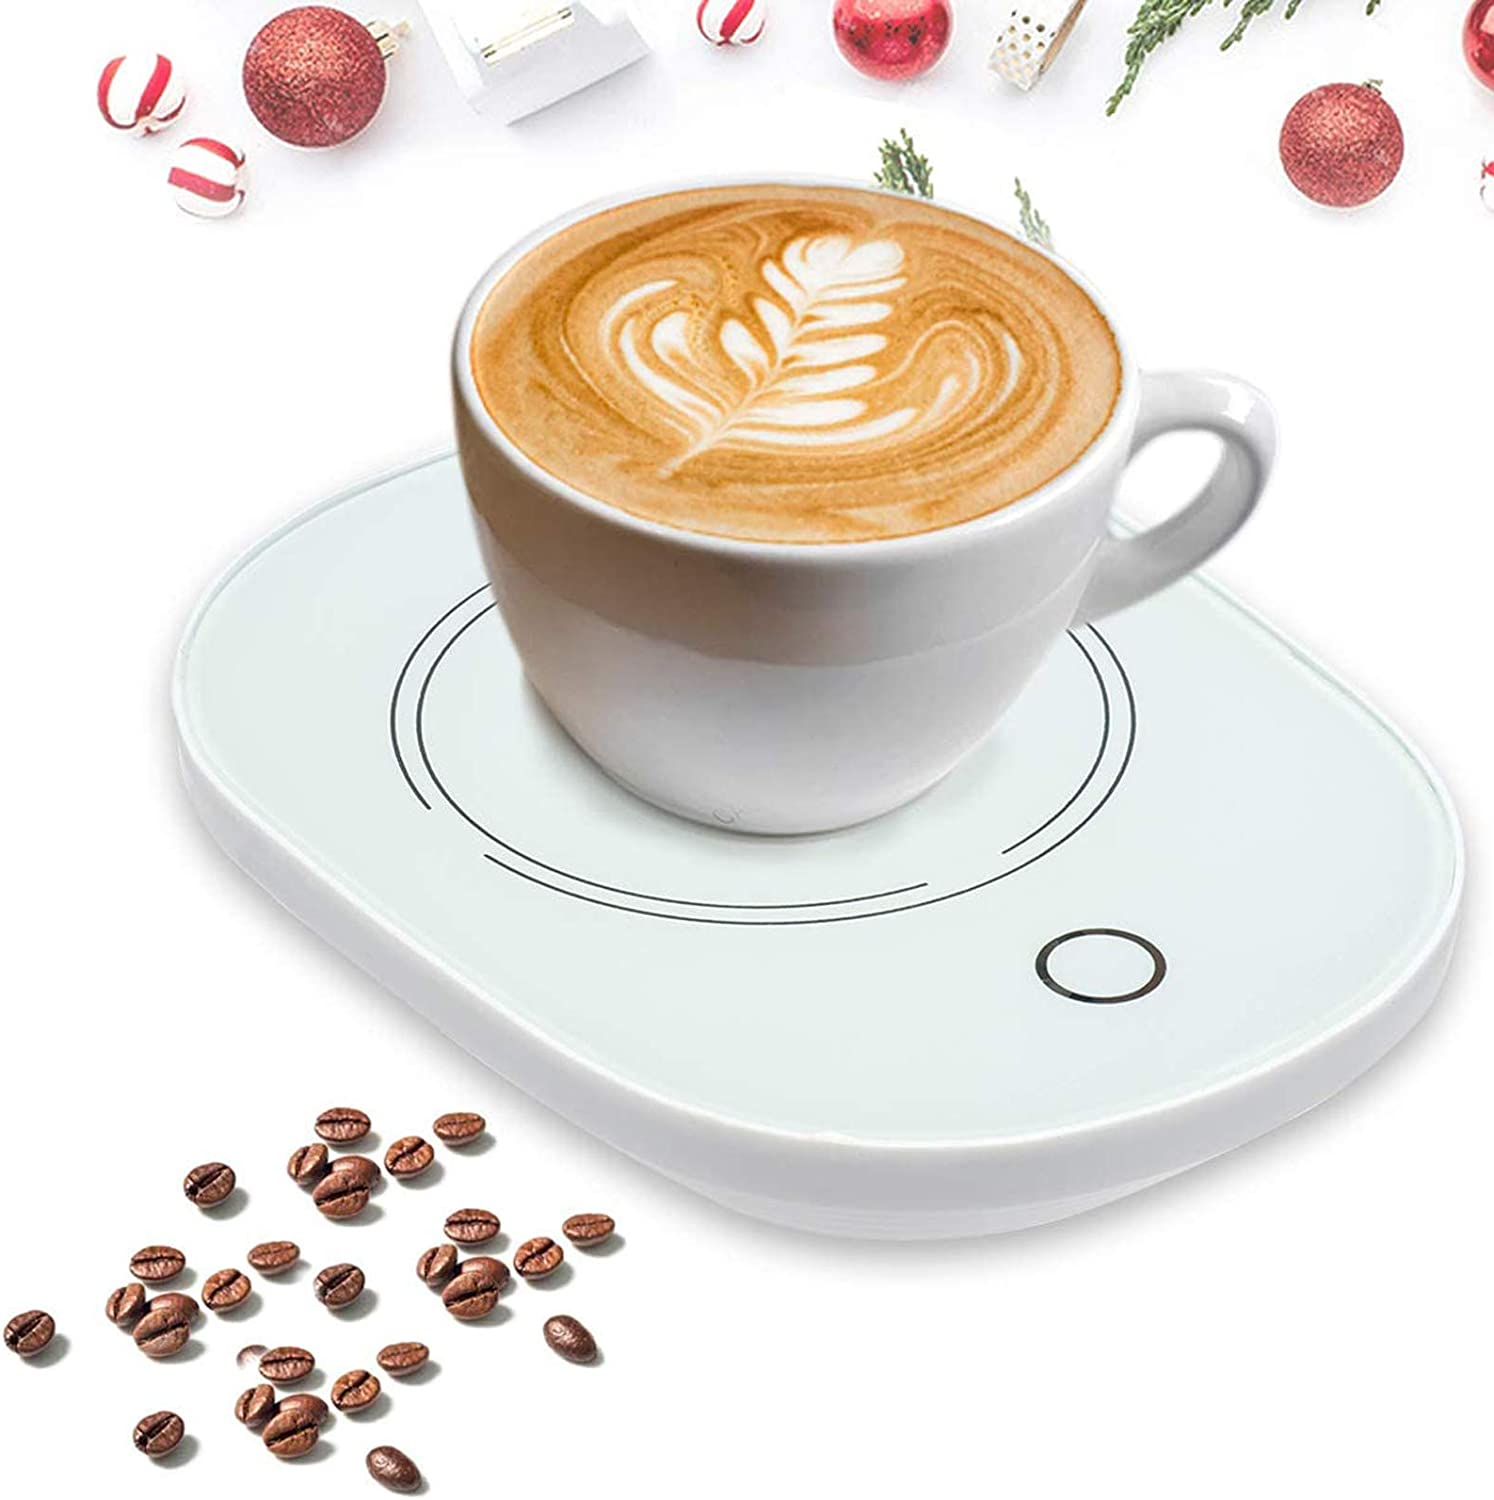 Smart Coffee Popular shop is the lowest price challenge Mug Warmer Electric Office Save money Hom for Beverage